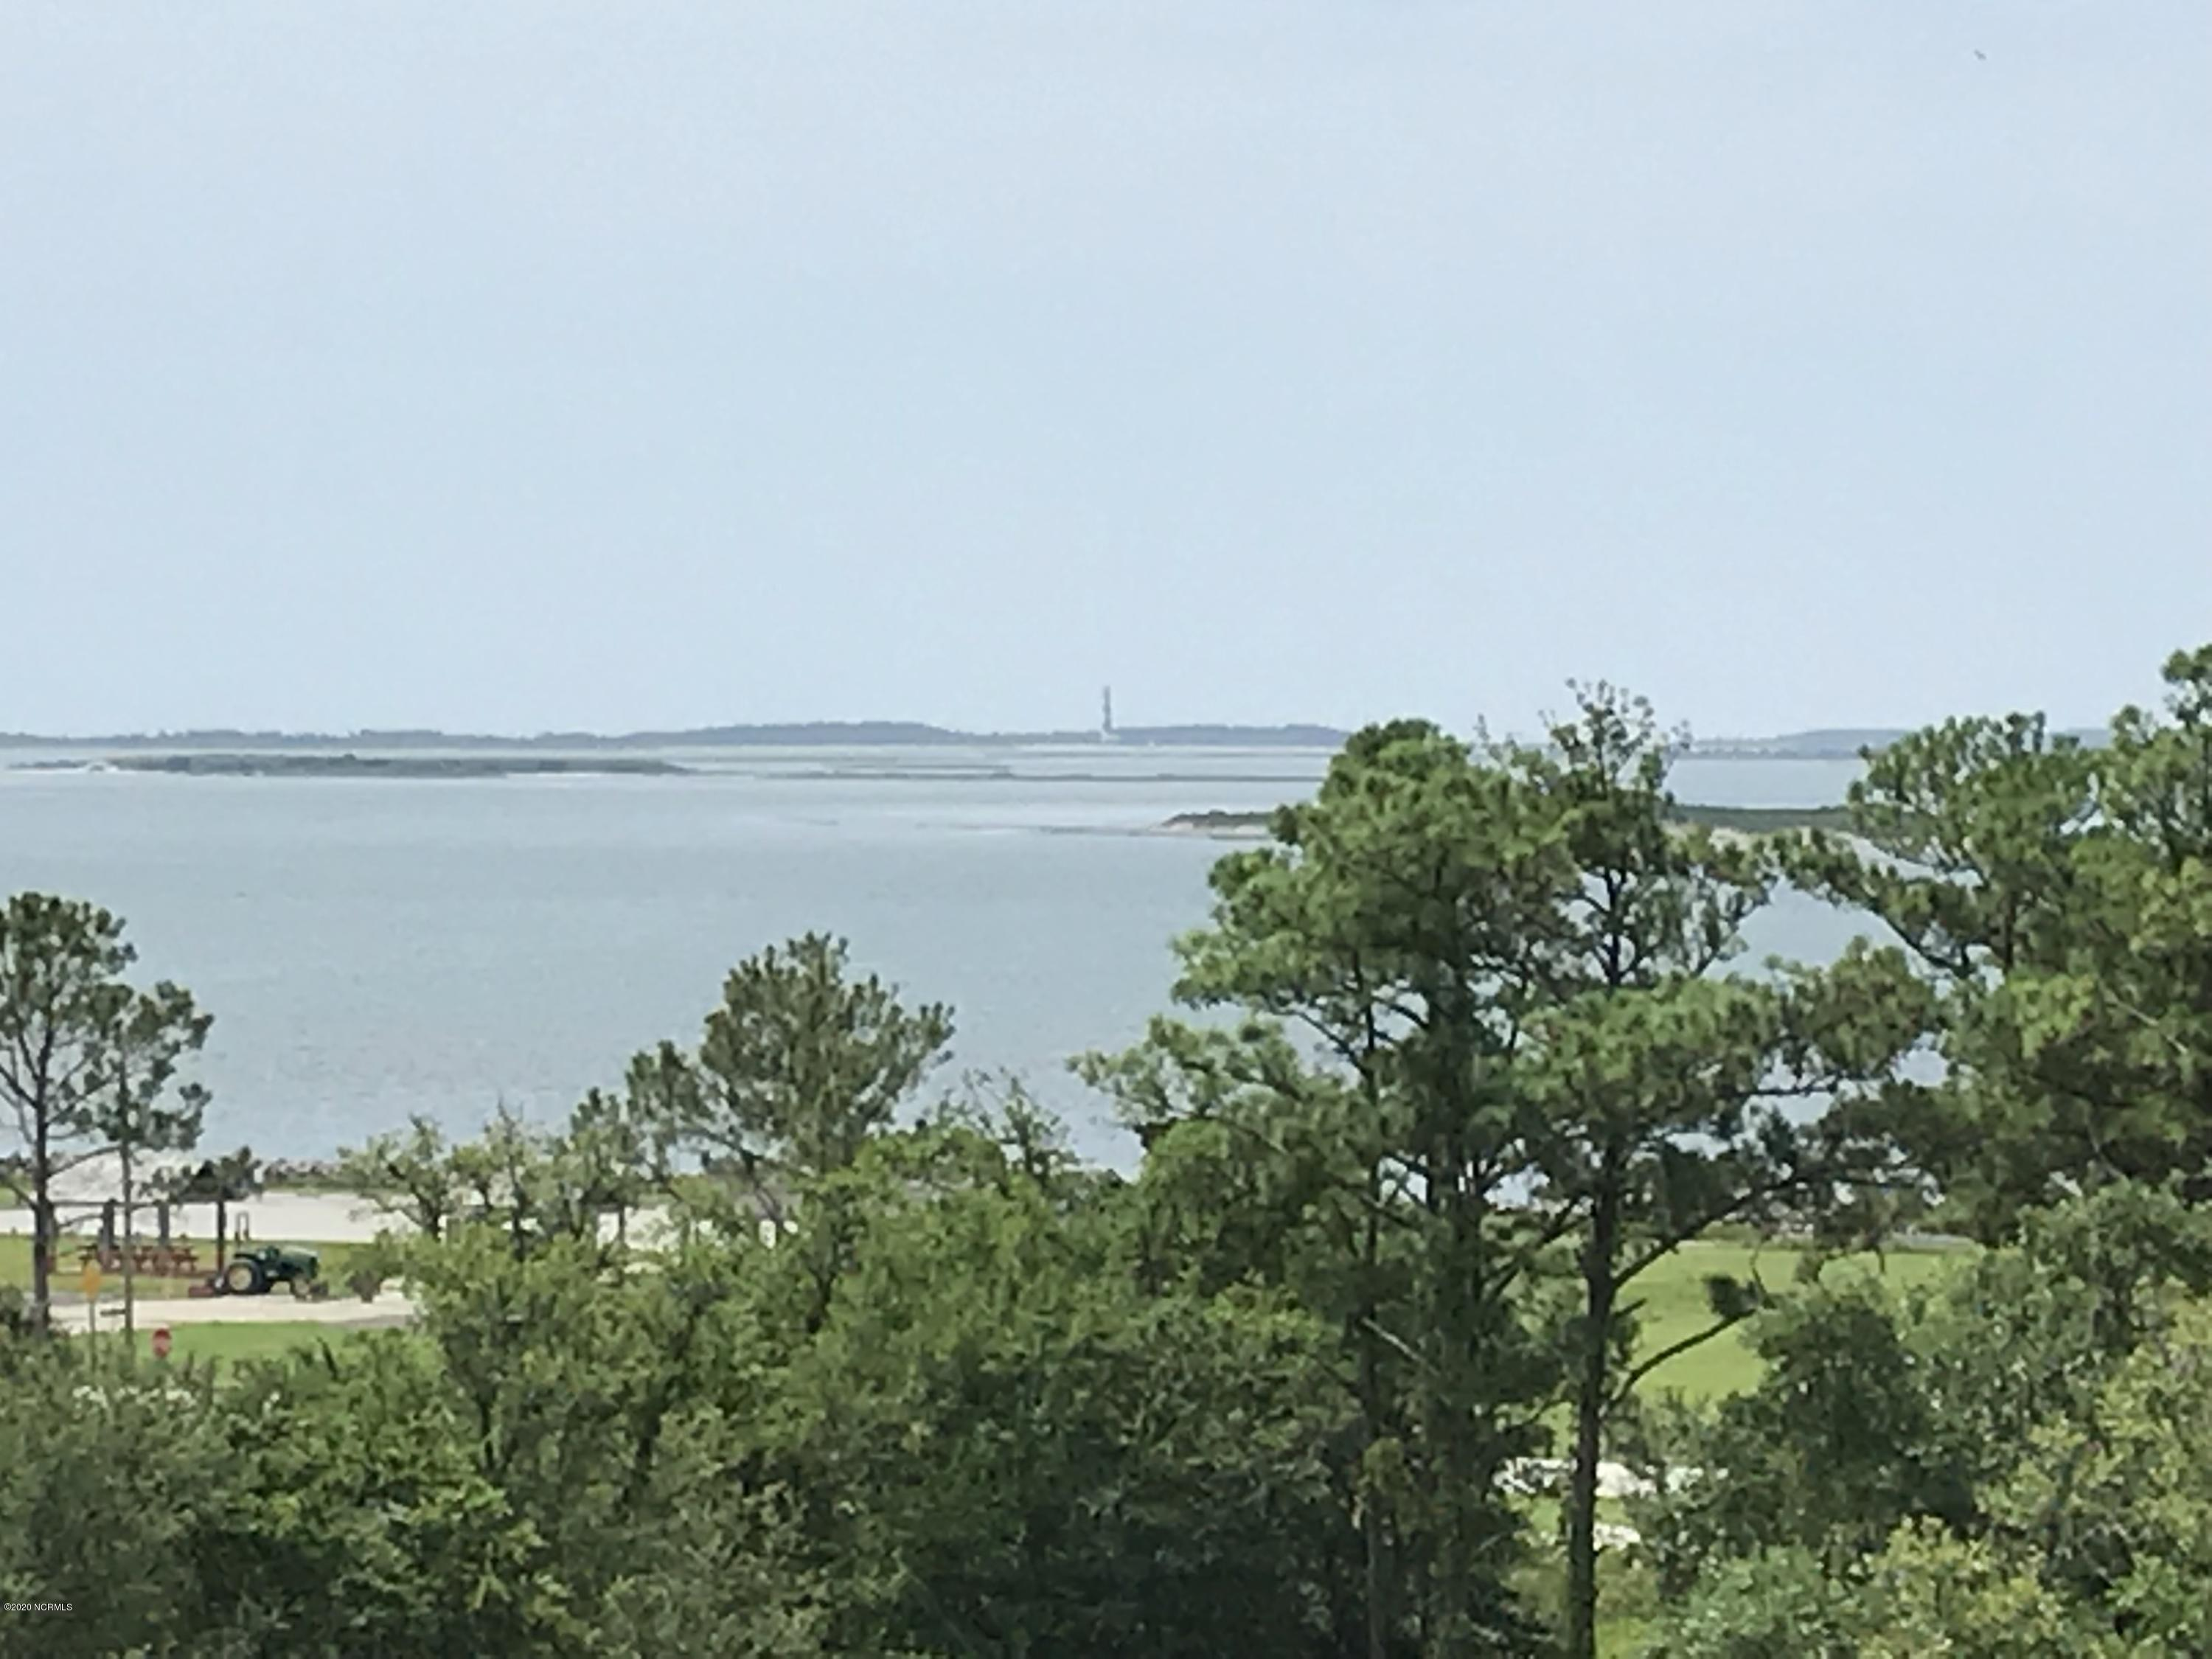 158 Westbay Circle, Harkers Island, North Carolina 28531, ,Residential land,For sale,Westbay,100231366